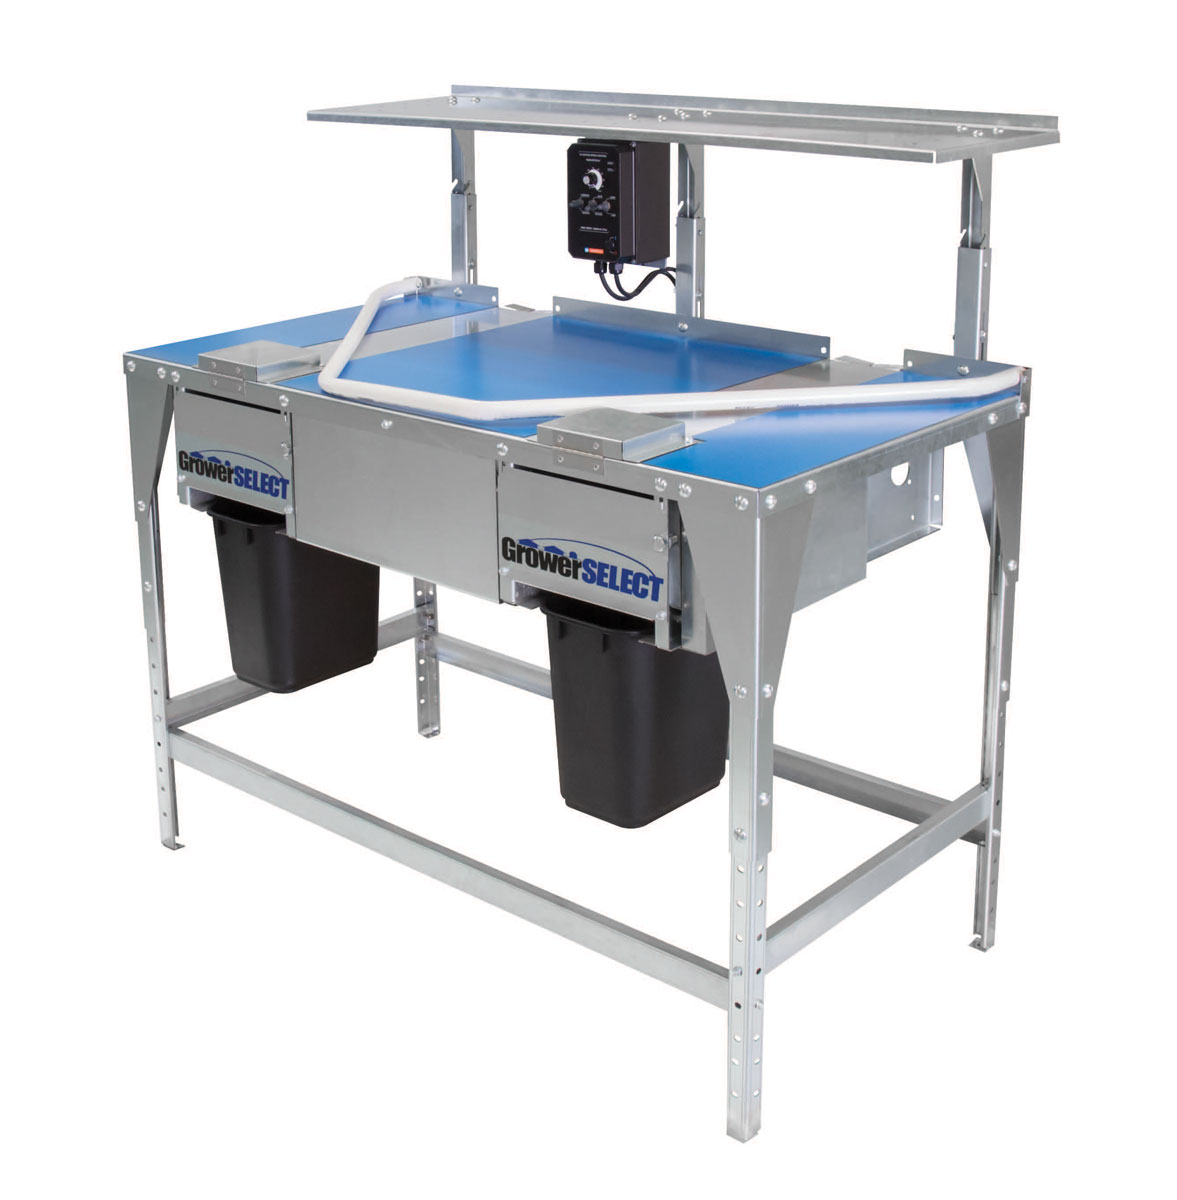 GrowerSELECT Egg Collection Tables are available in side-belt and center-belt models. (Shown: Side-belt egg collection table, Item # GSN-5200)